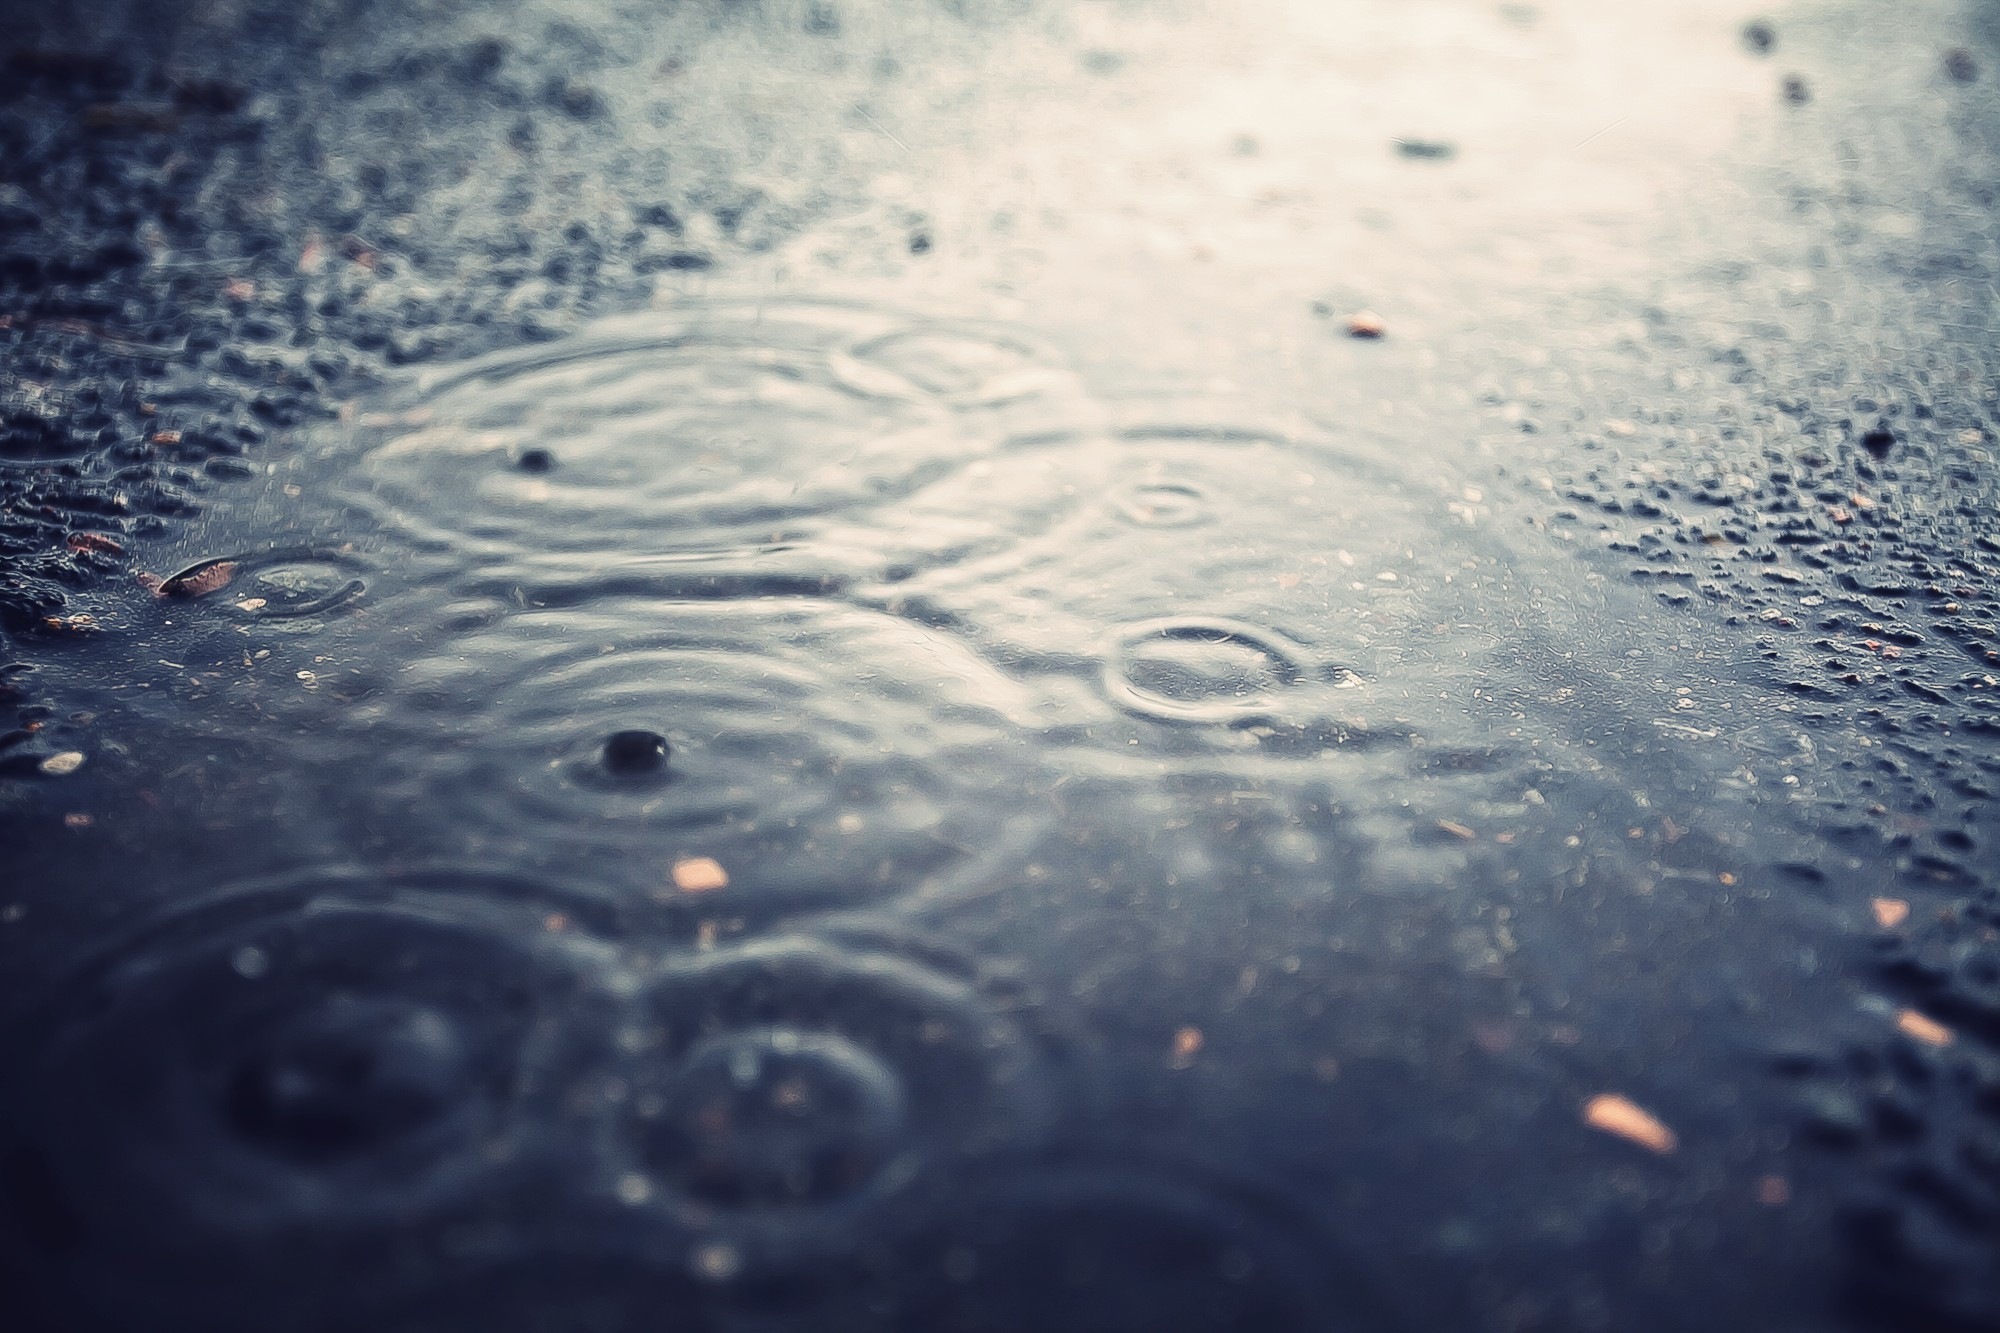 water rain ripples water HD Wallpaper